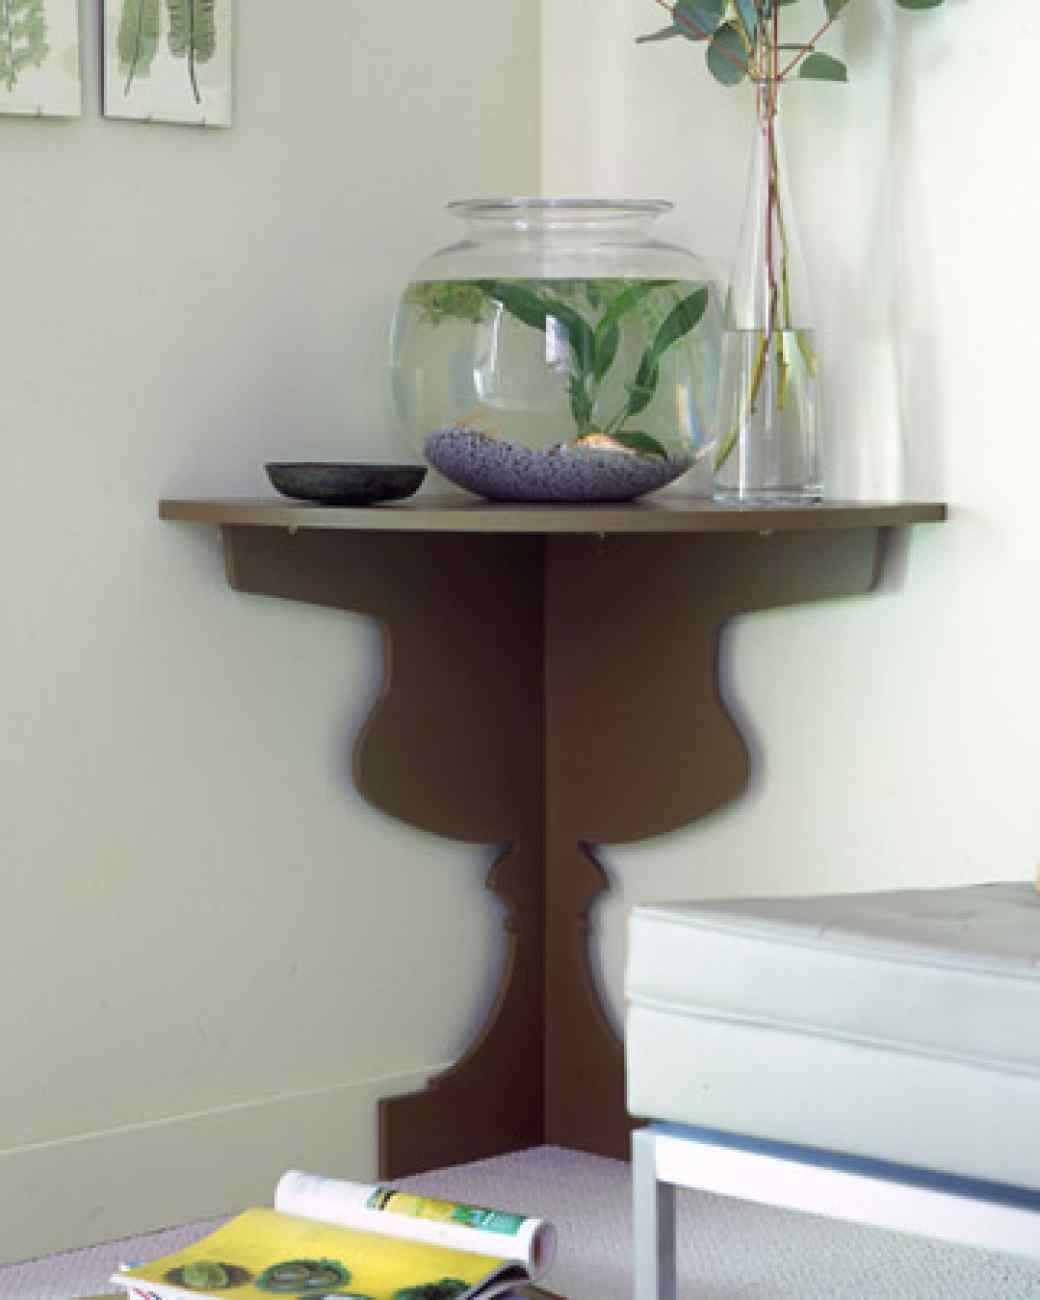 Medium Crop Of Corner Shelf Hanging